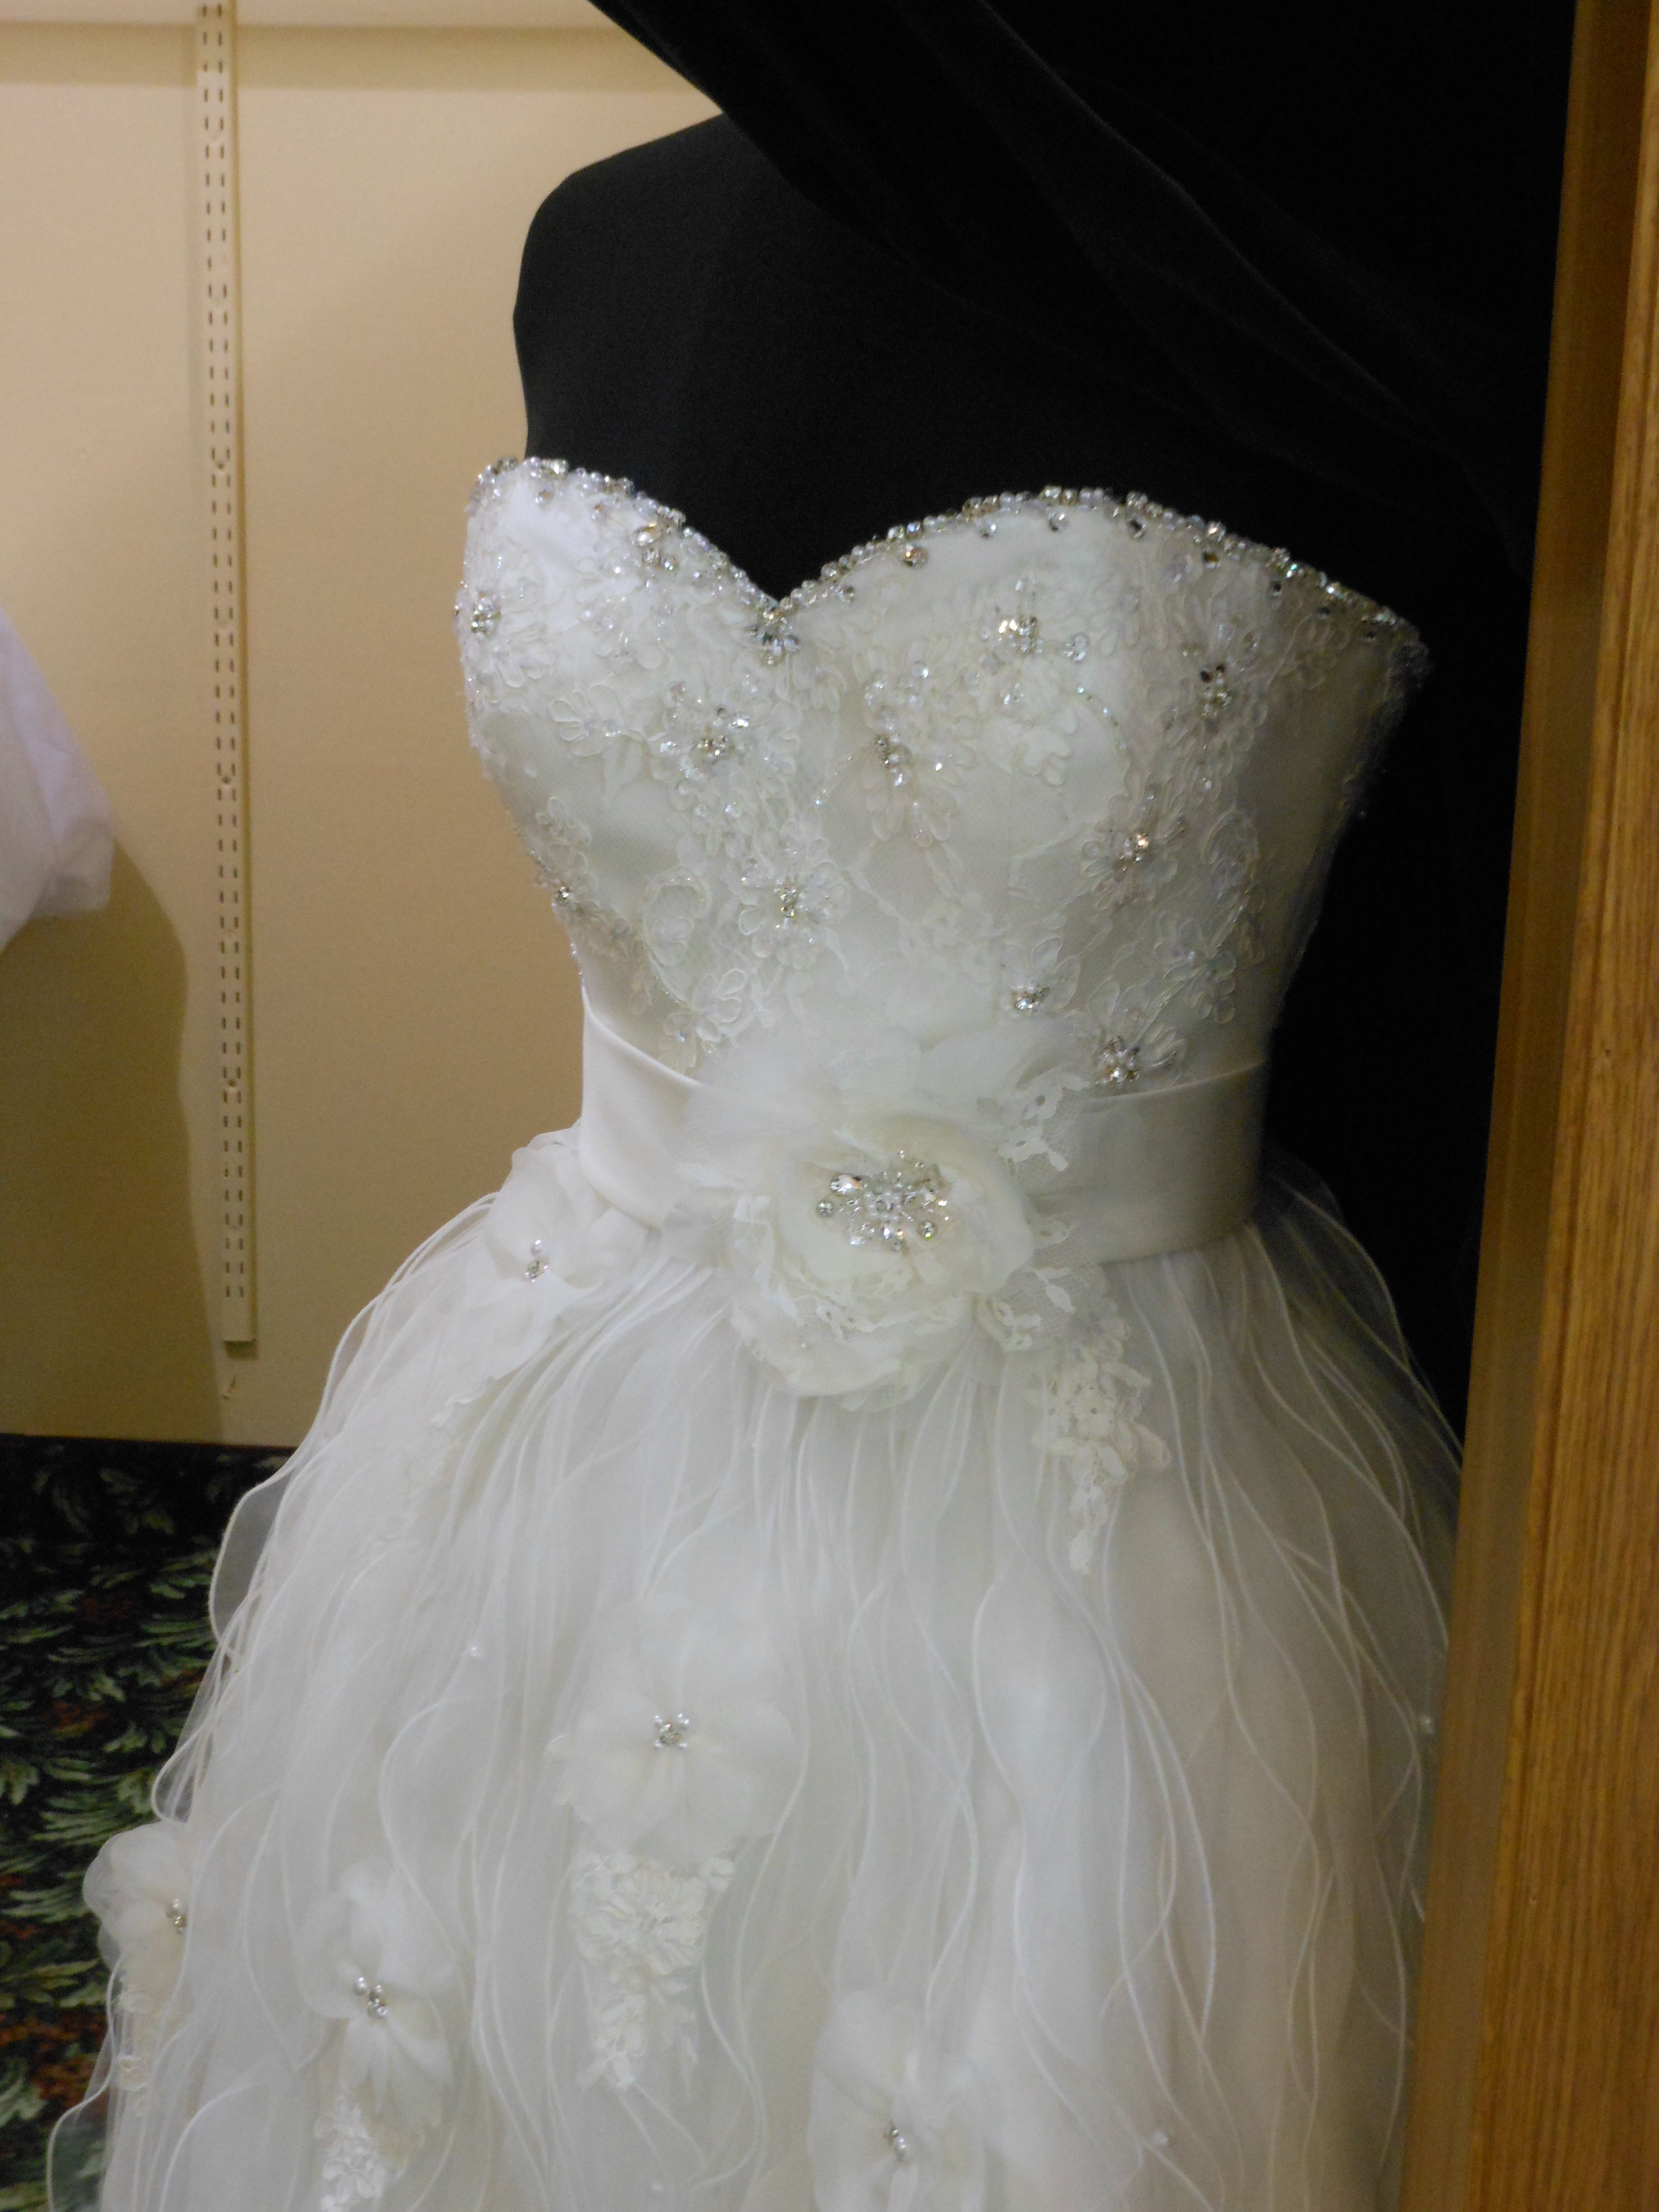 This short gown is just too adorable! Sweetheart neckline, fluttery layers, and a flower detail make it just right!